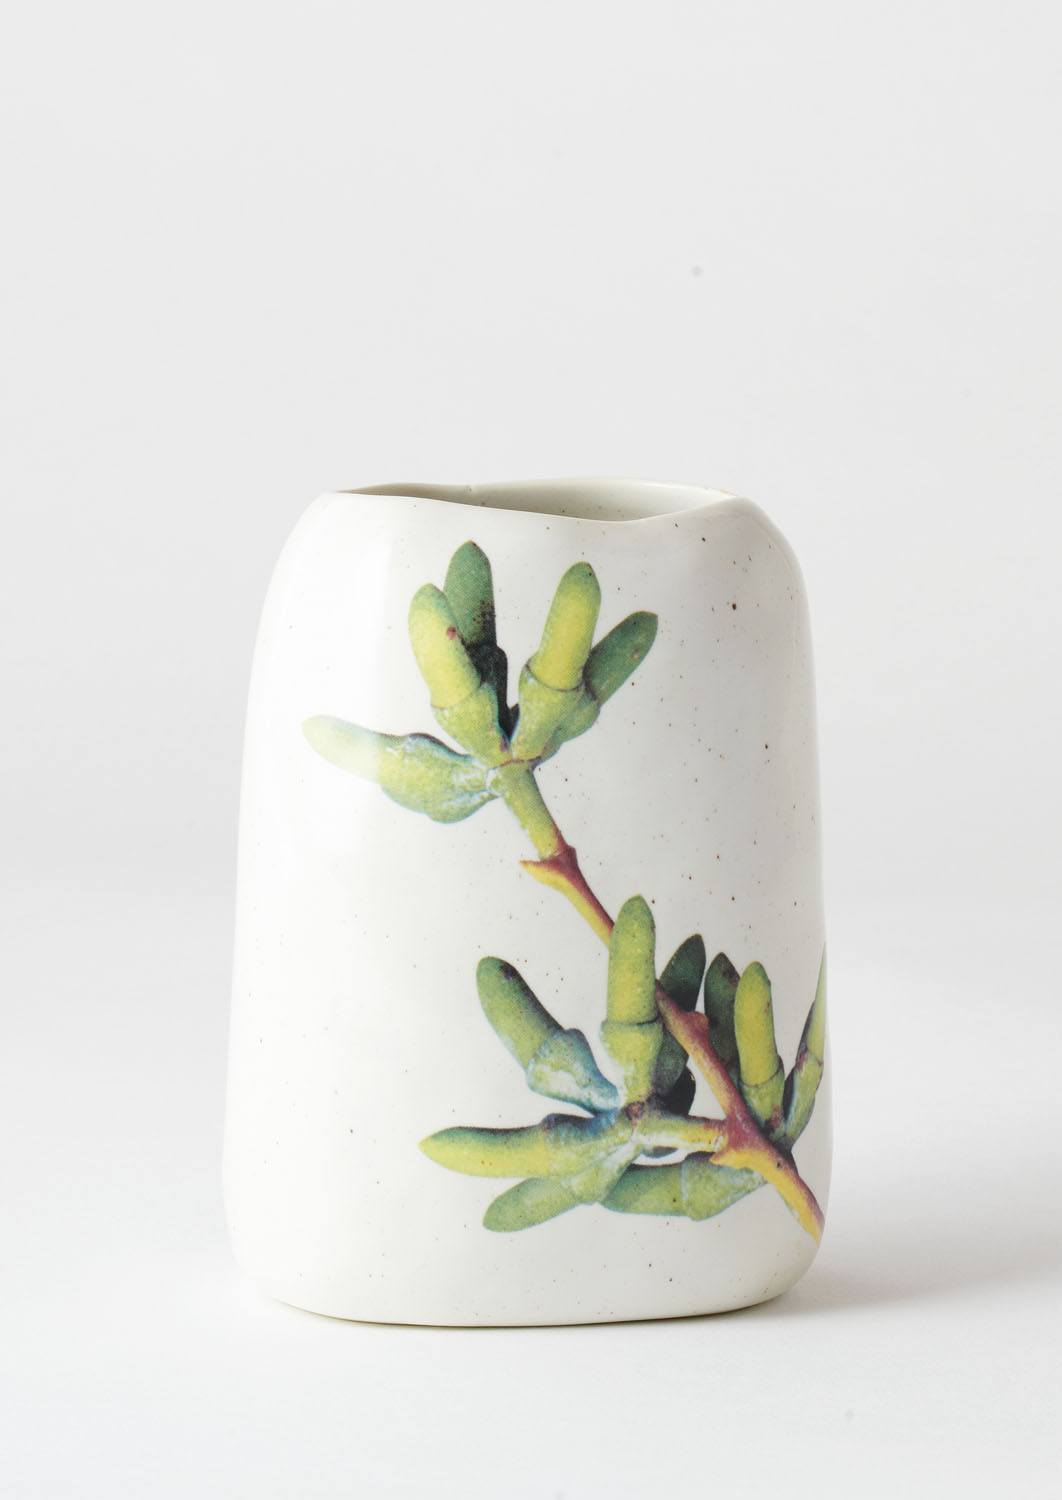 Pebble Vase Green Eucalyptus Buds